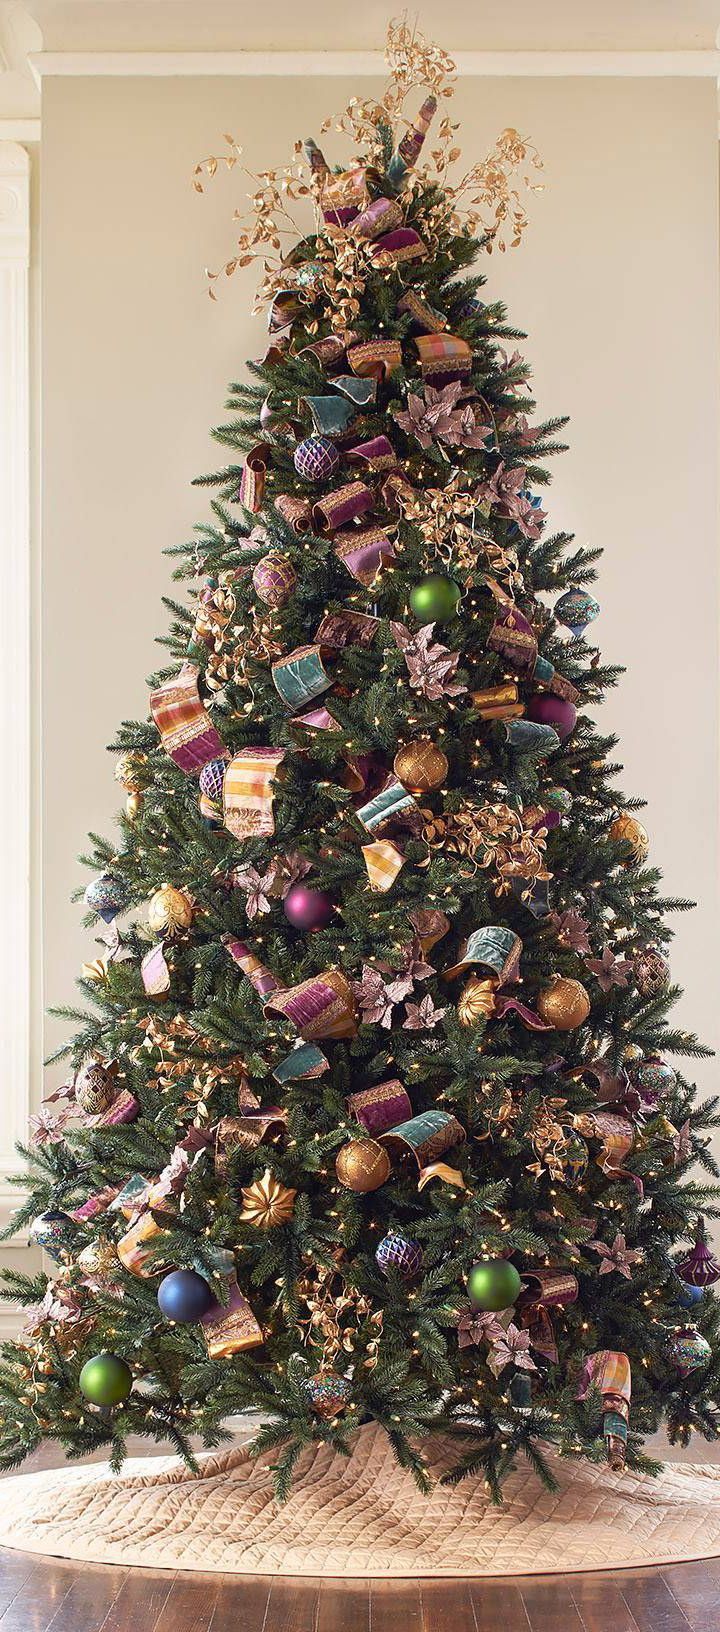 Napa Jewel Christmas Tree | CHRISTMAS | Pinterest | Jeweled ...